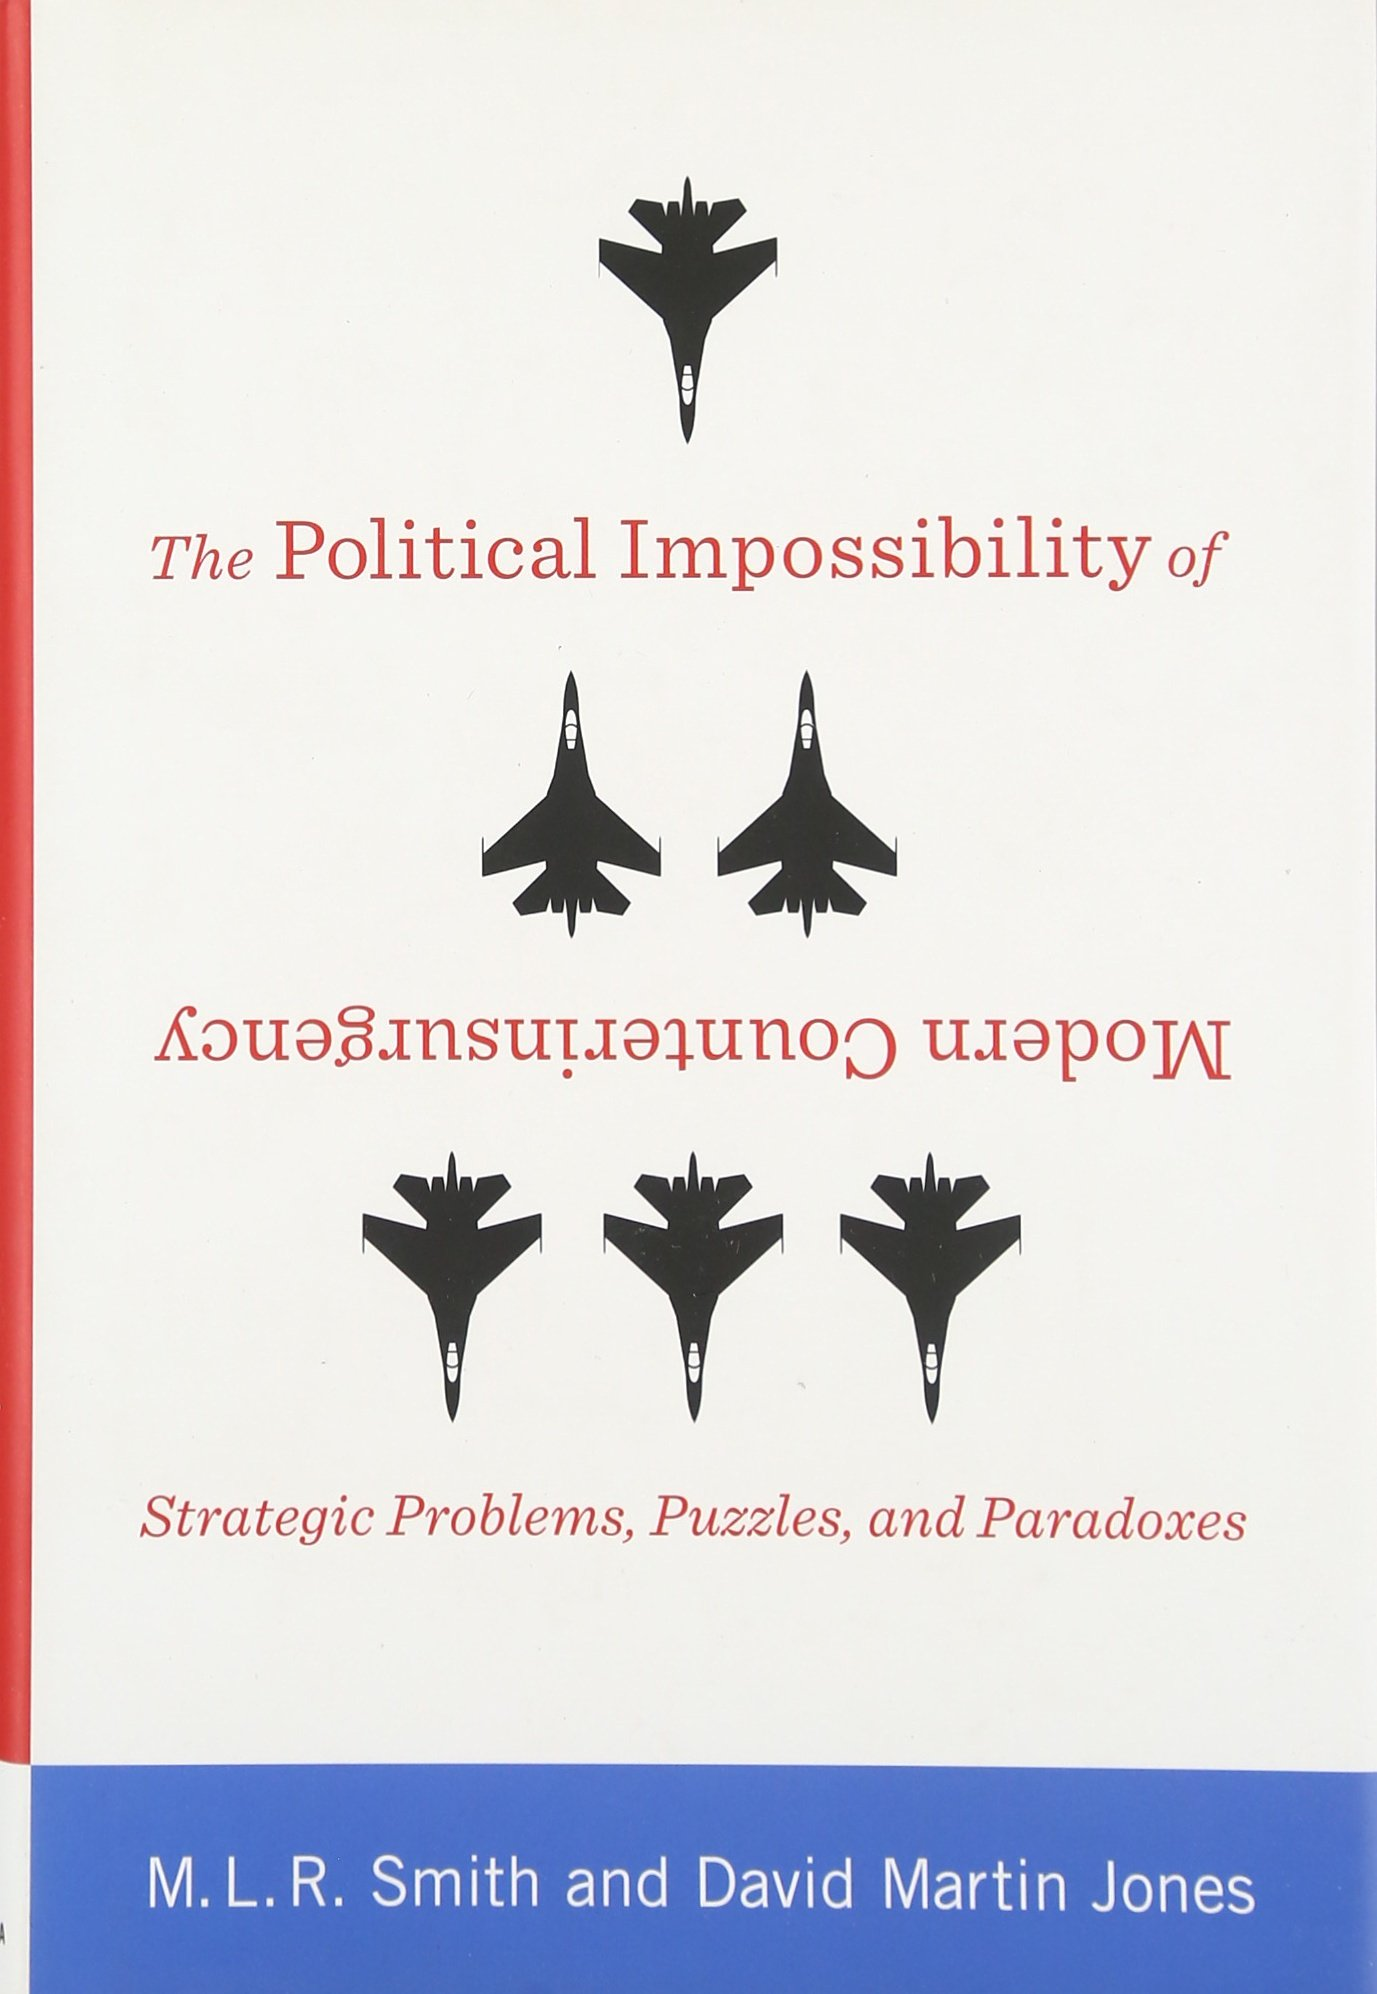 The Political Impossibility of Modern Counterinsurgency: Strategic Problems, Puzzles, and Paradoxes (Columbia Studies in Terrorism and Irregular Warfare)